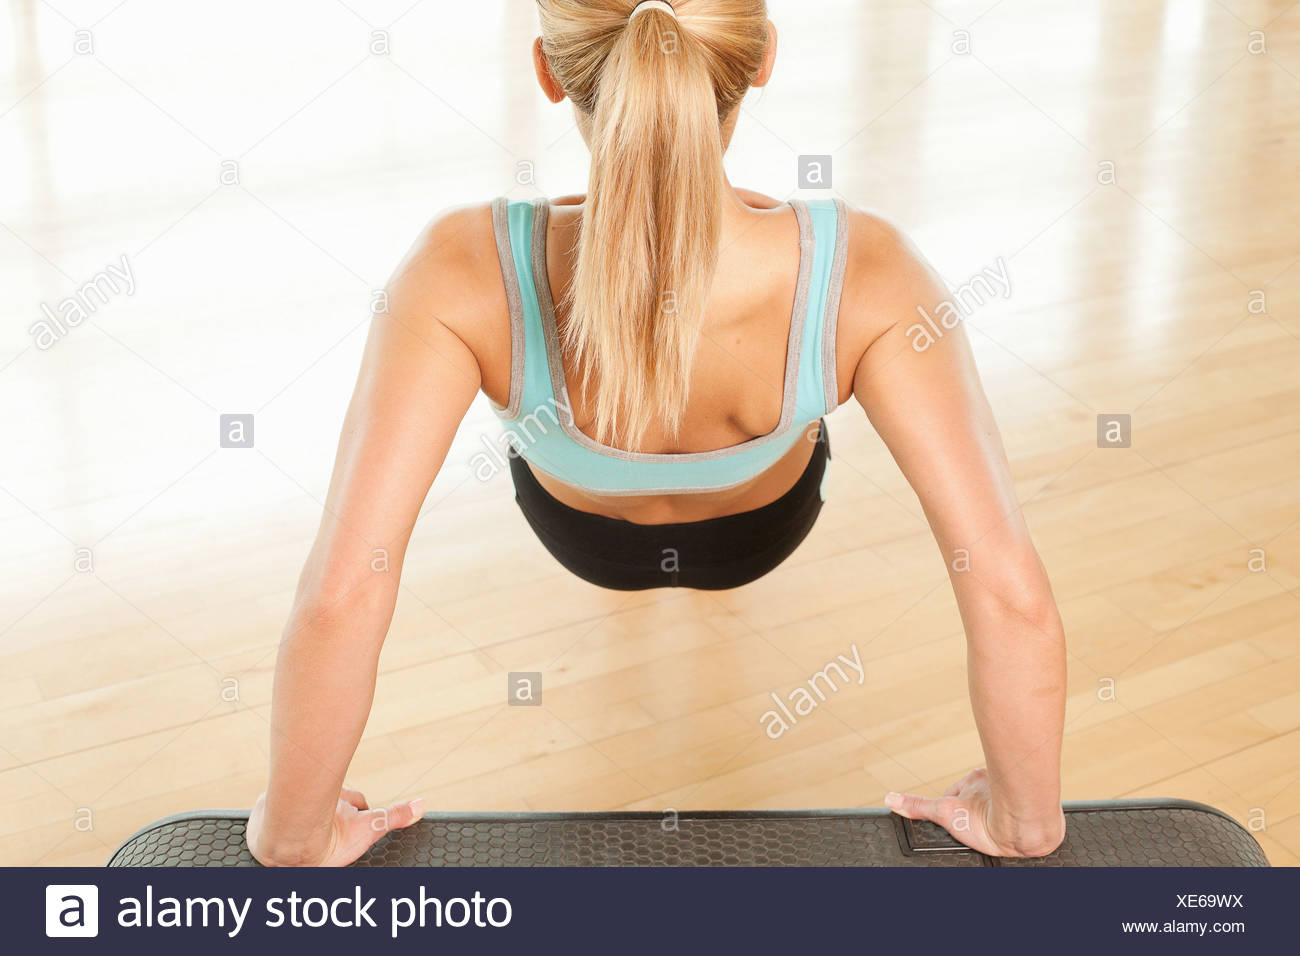 Rear view of woman doing press ups on step - Stock Image